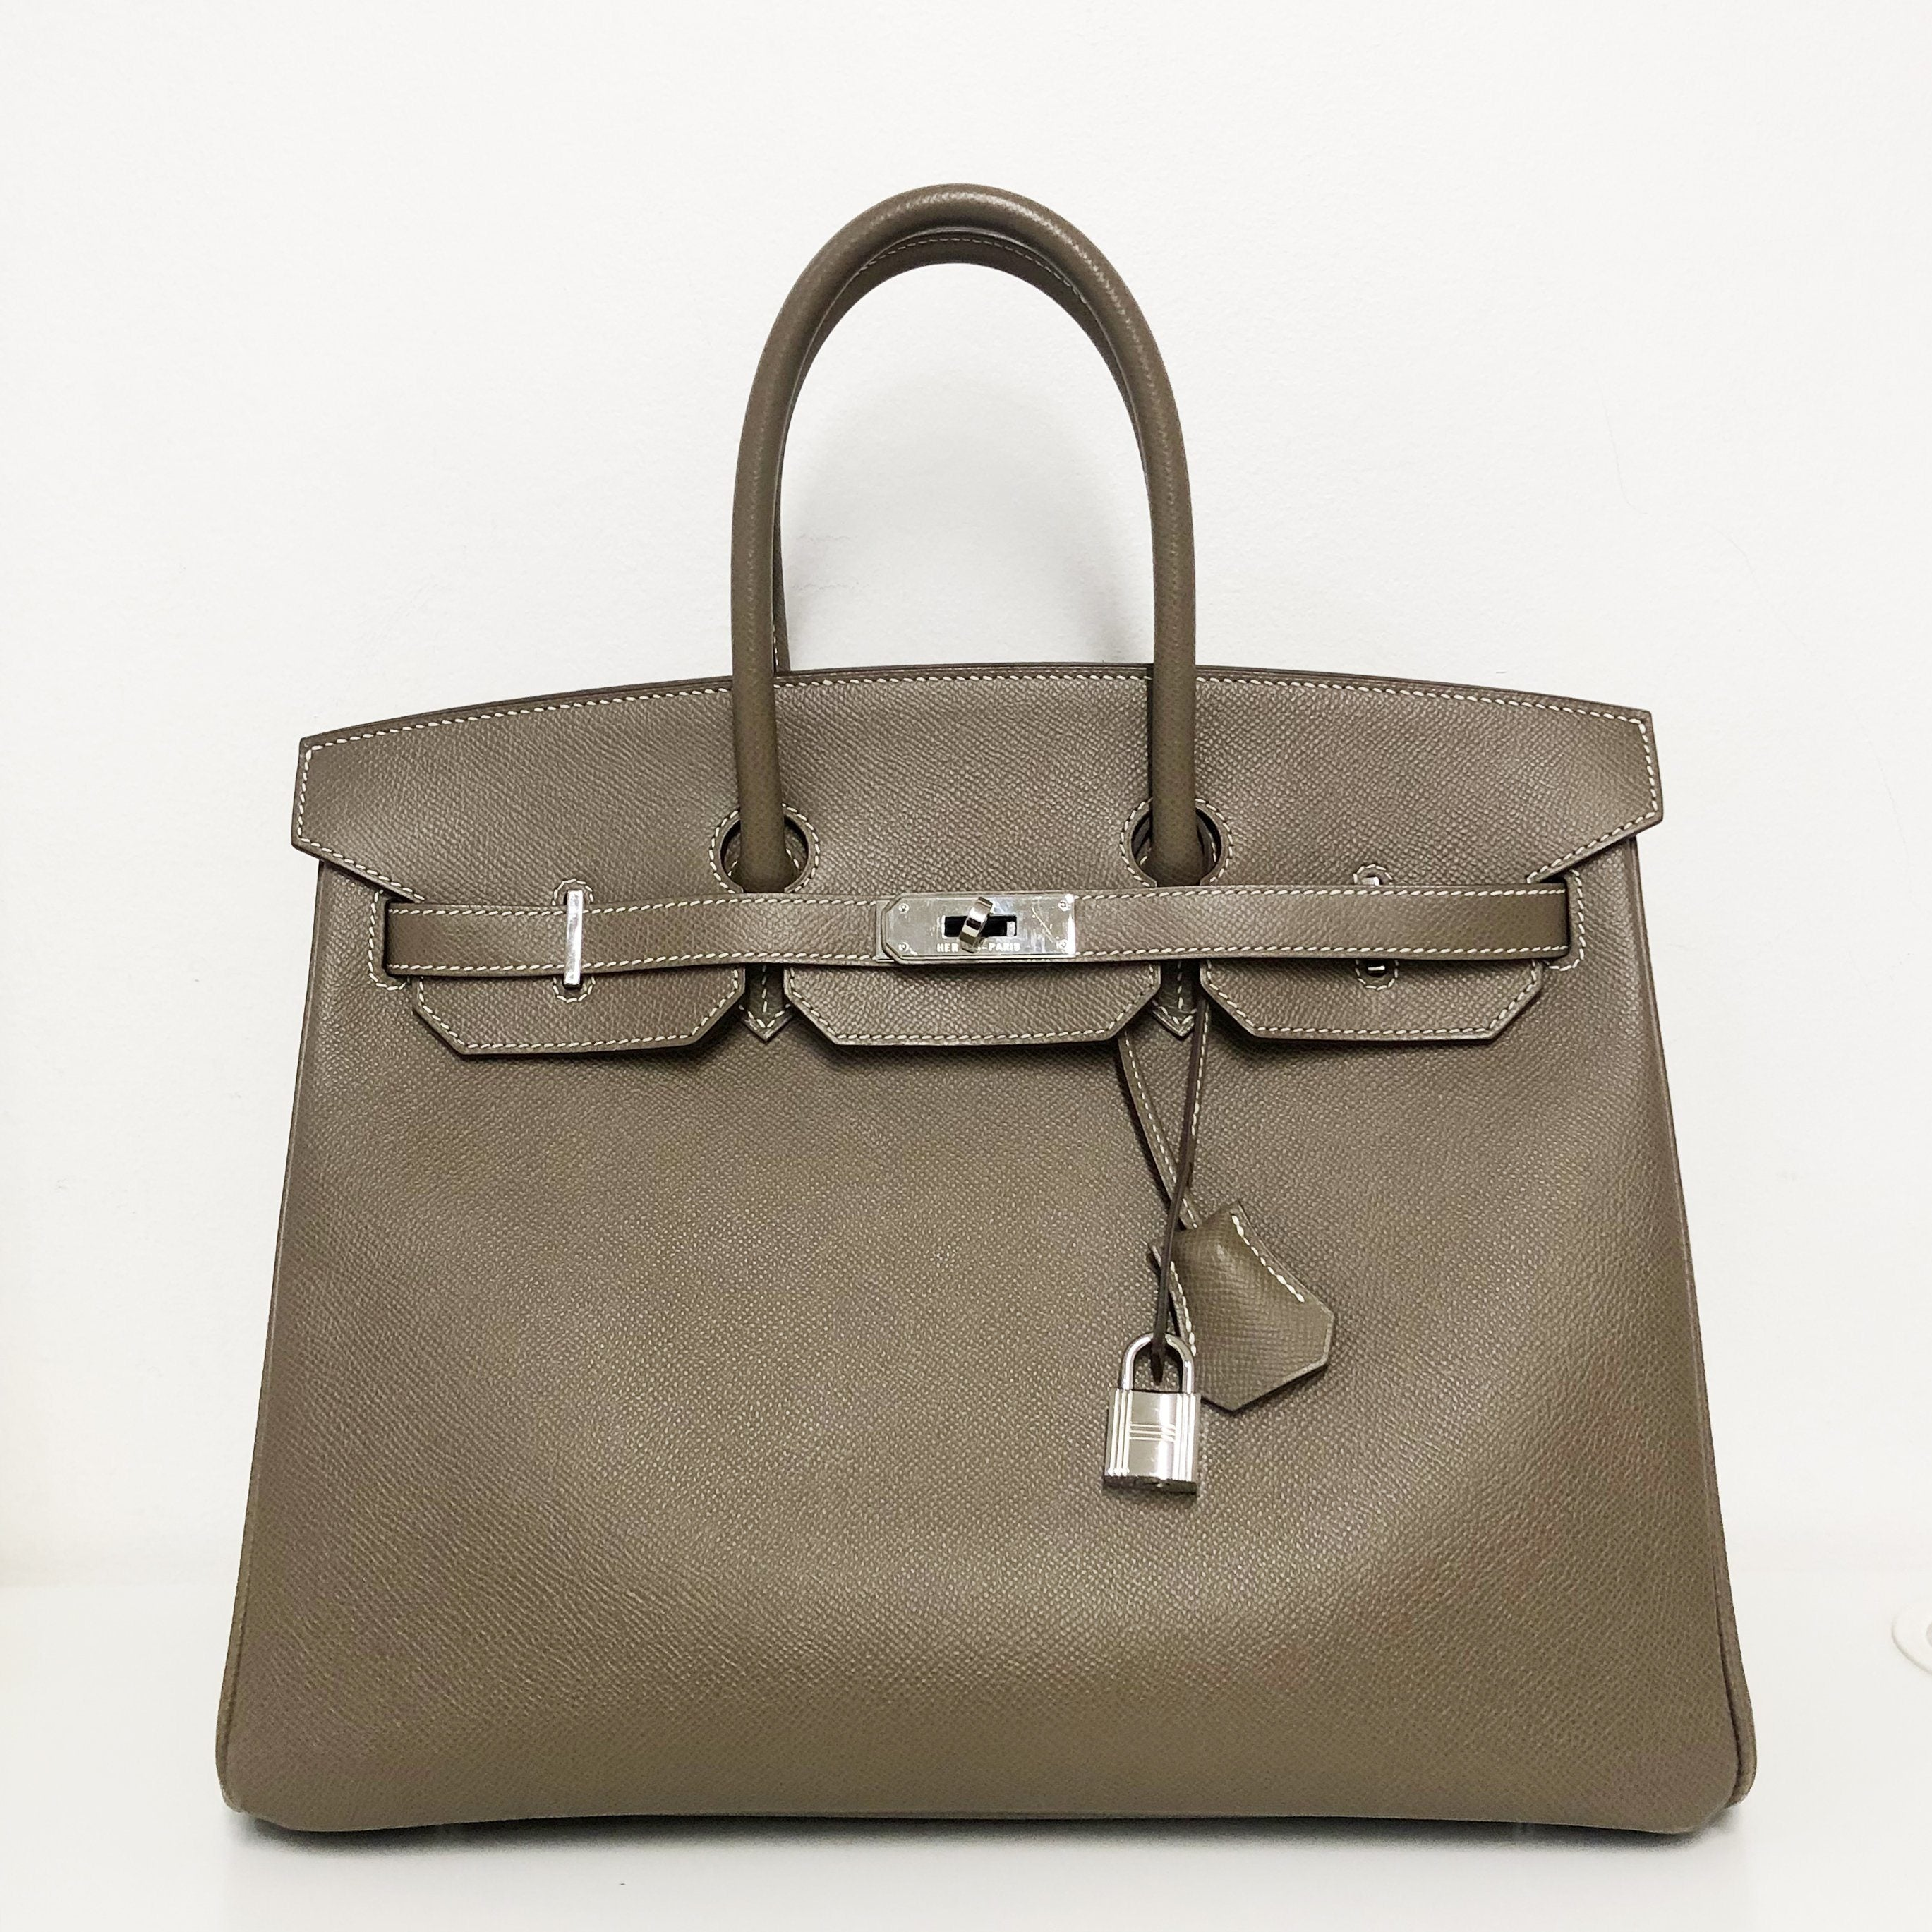 Hermes Birkin 35 Etoupe in Epsom Leather